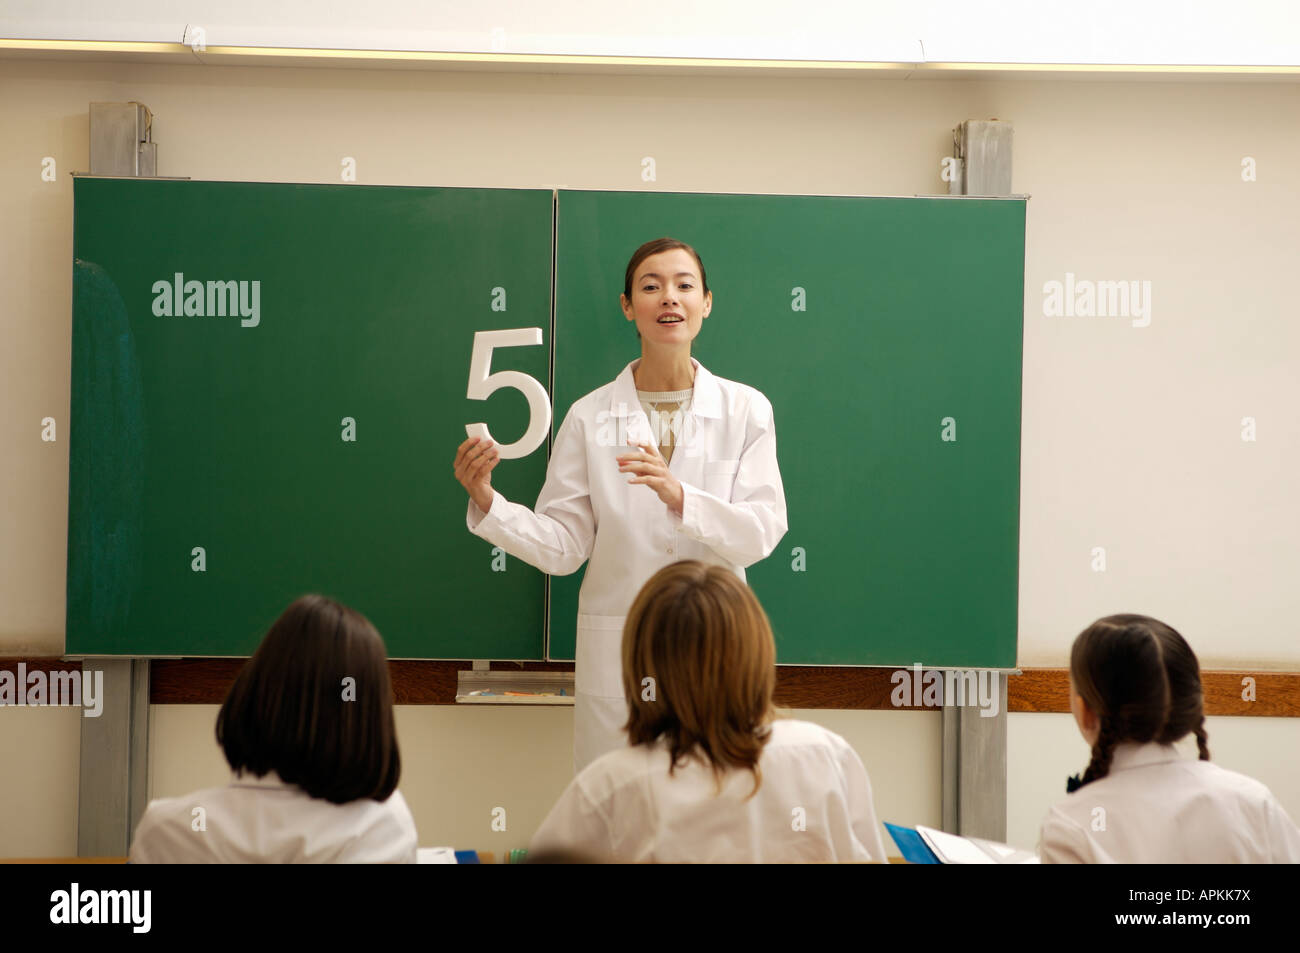 Students and teacher in classroom - Stock Image